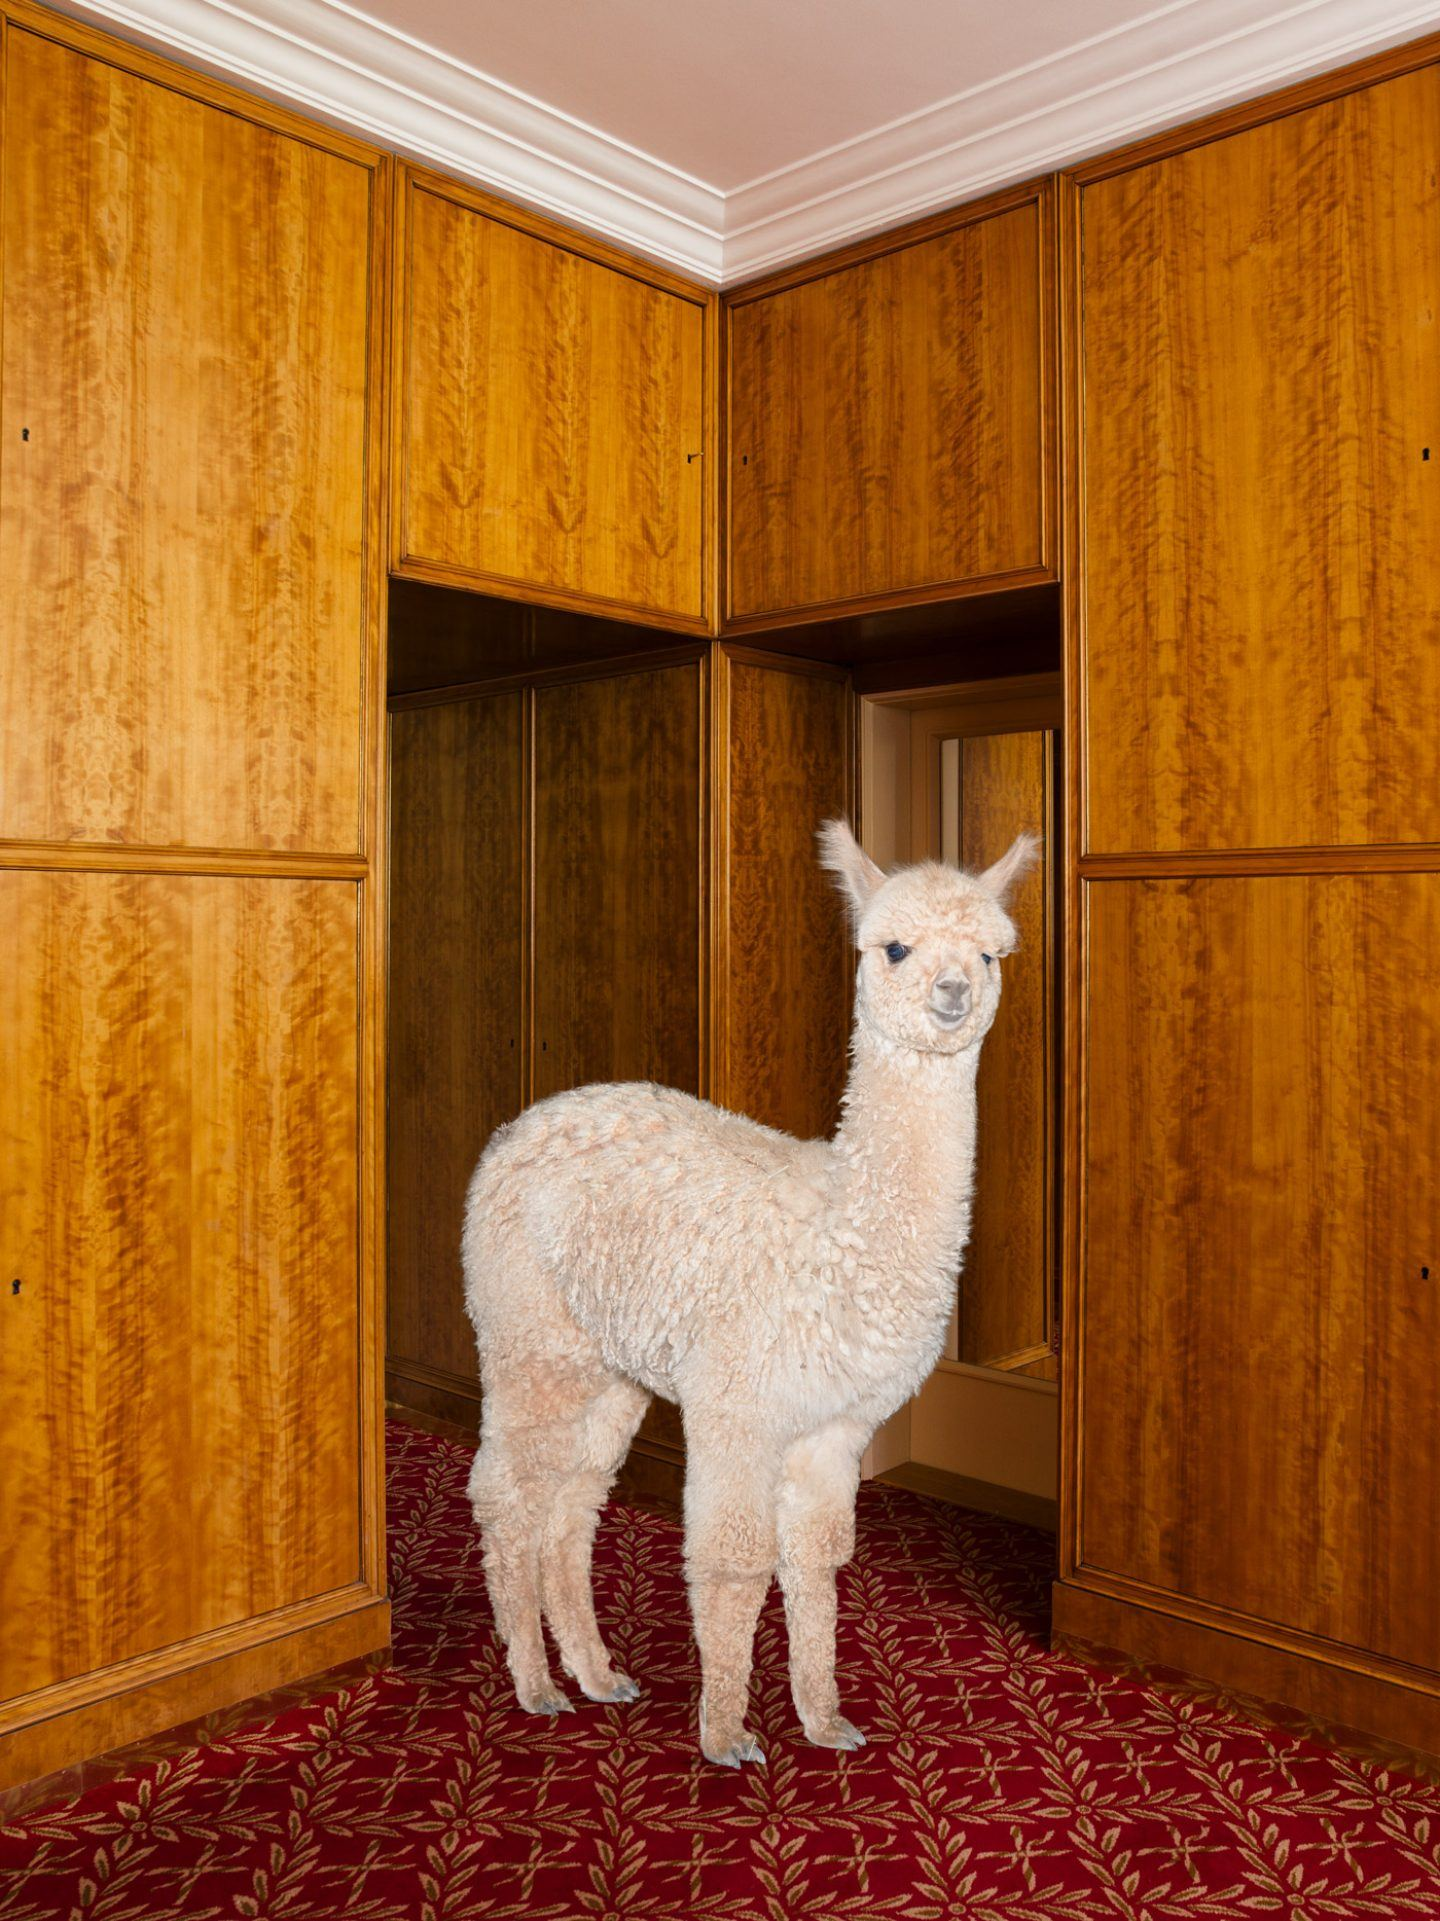 IGNANT-Photography-Daniel-Gebhart-De-Koekkoek-Better-Living-With-Alpacas-2-3